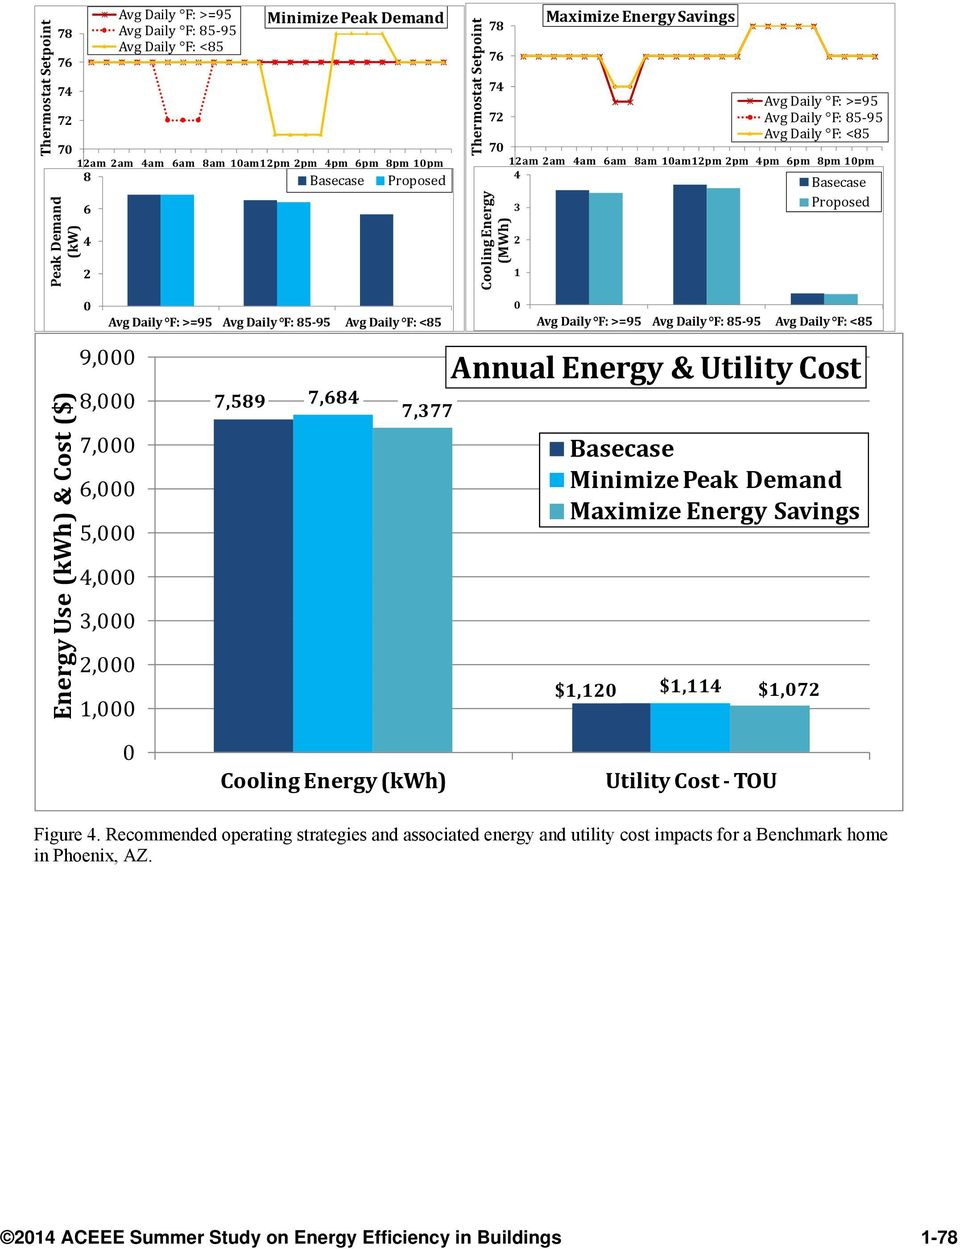 8am ampm pm 4pm 6pm 8pm pm 68 4 3 Proposed Cooling Energy (MWh) Avg Daily F: >=95 Avg Daily F: 85 95 Avg Daily F: <85 Annual Energy & Utility Cost $, $,4 $, Cooling Energy (kwh) Utility